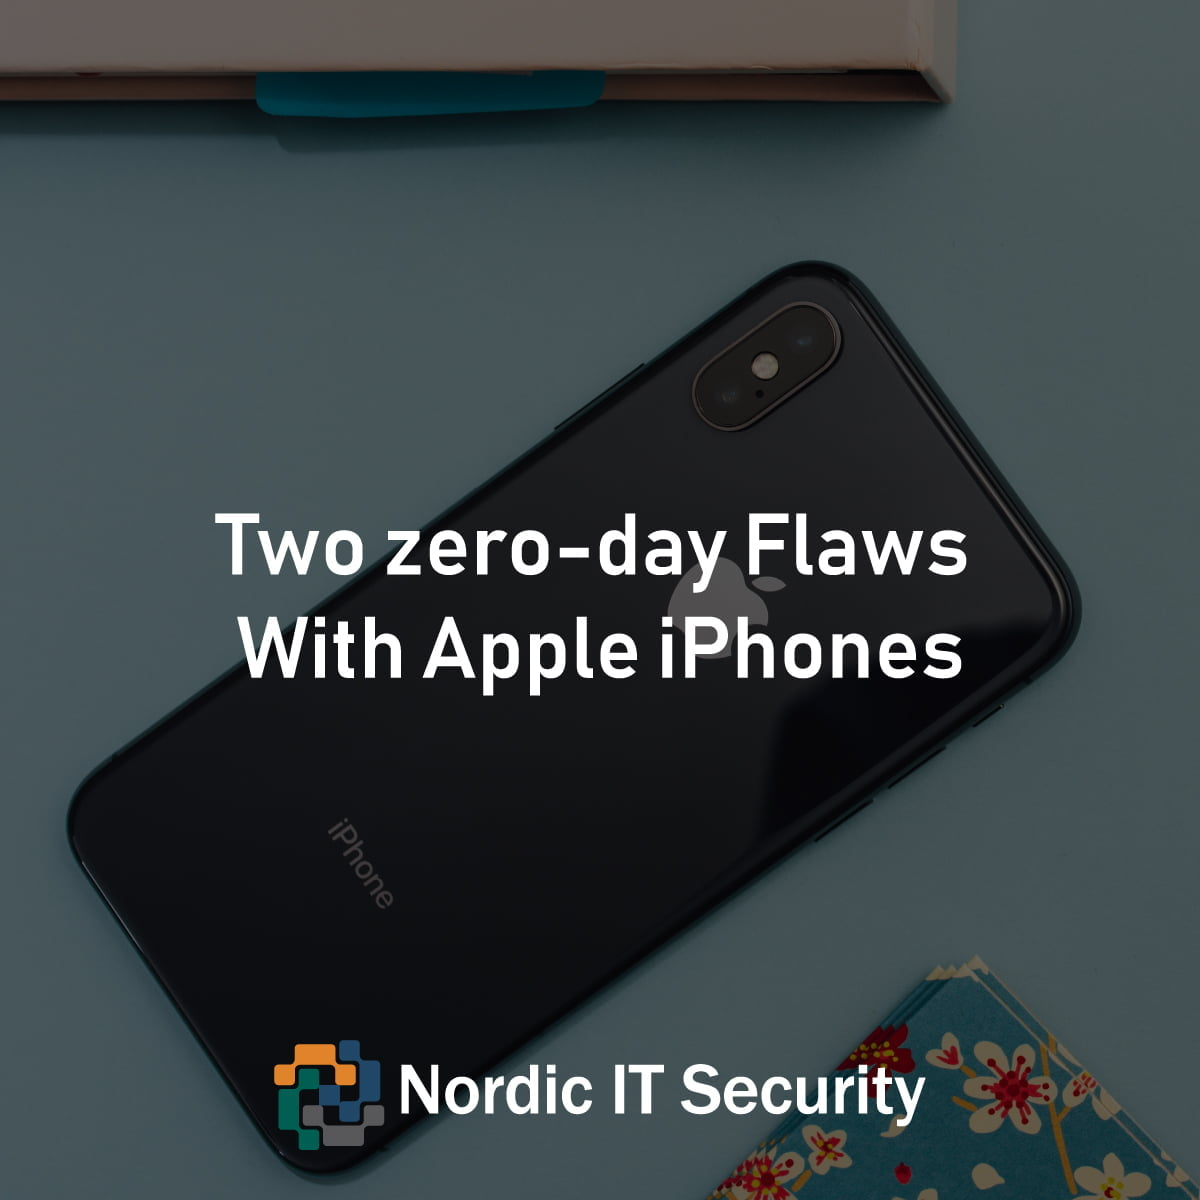 Two zero-day Flaws With Apple iPhones and iPads Let Attackers to Hack Devices Just by Sending Emails - Blog post from Nordic IT Security Forum 2020